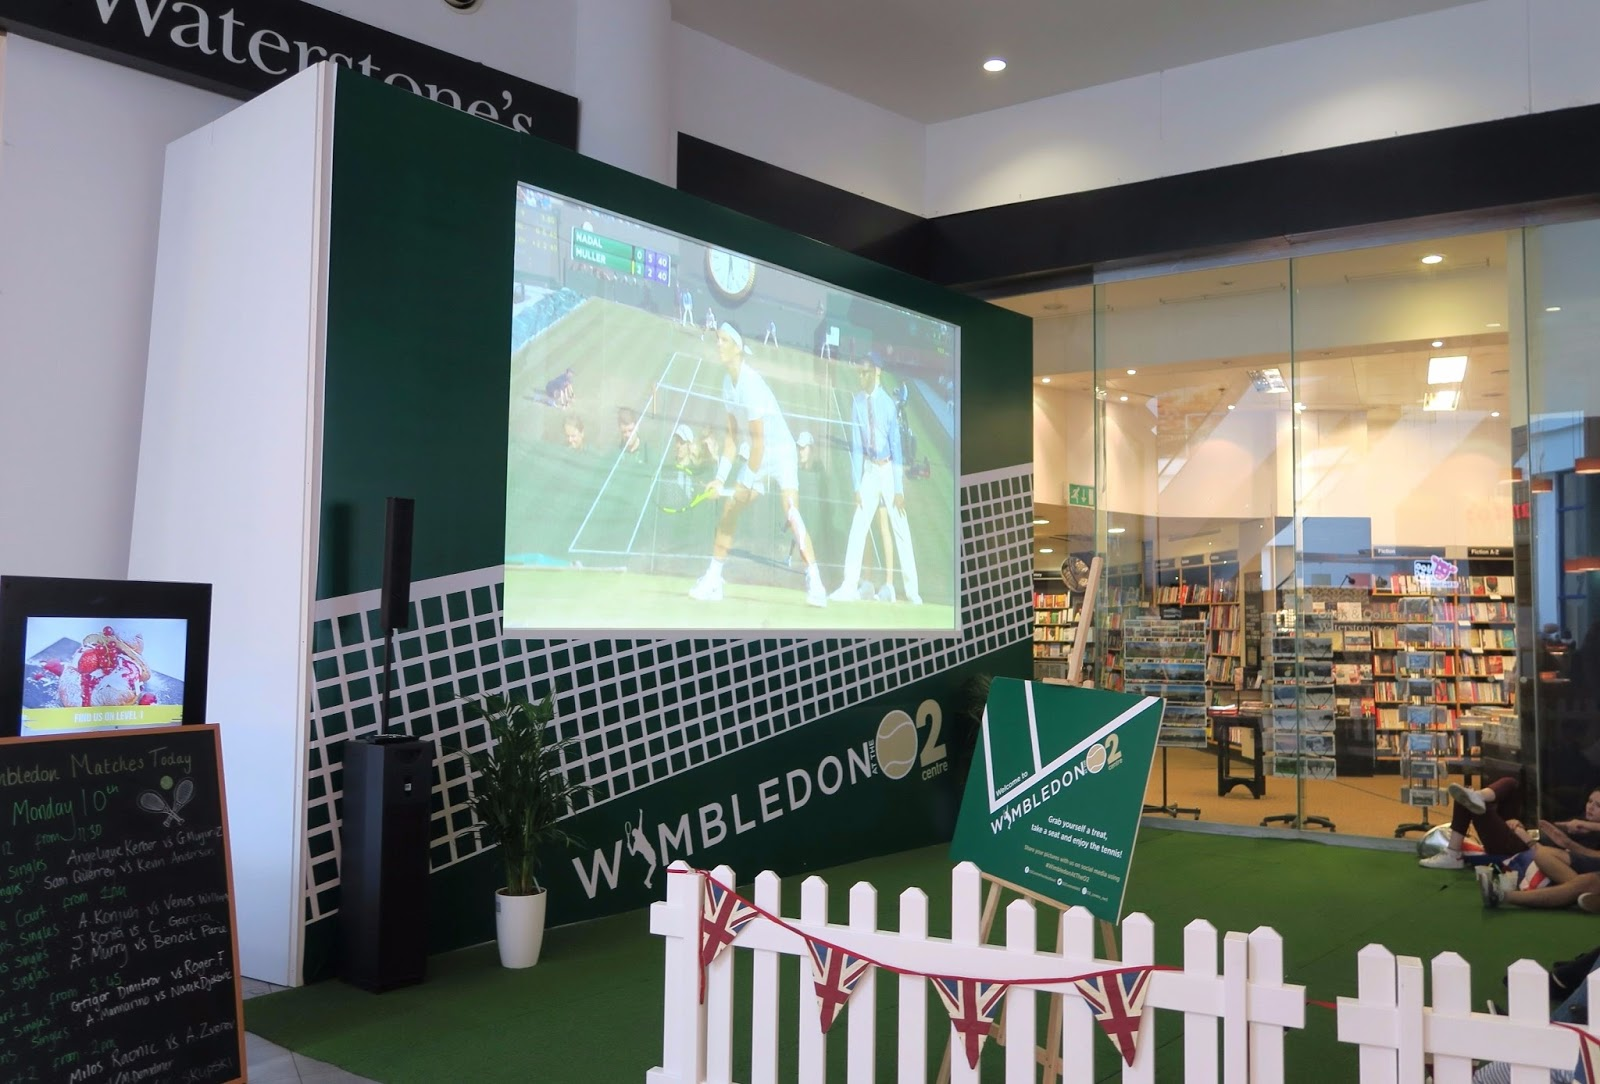 Screening of wimbledon match